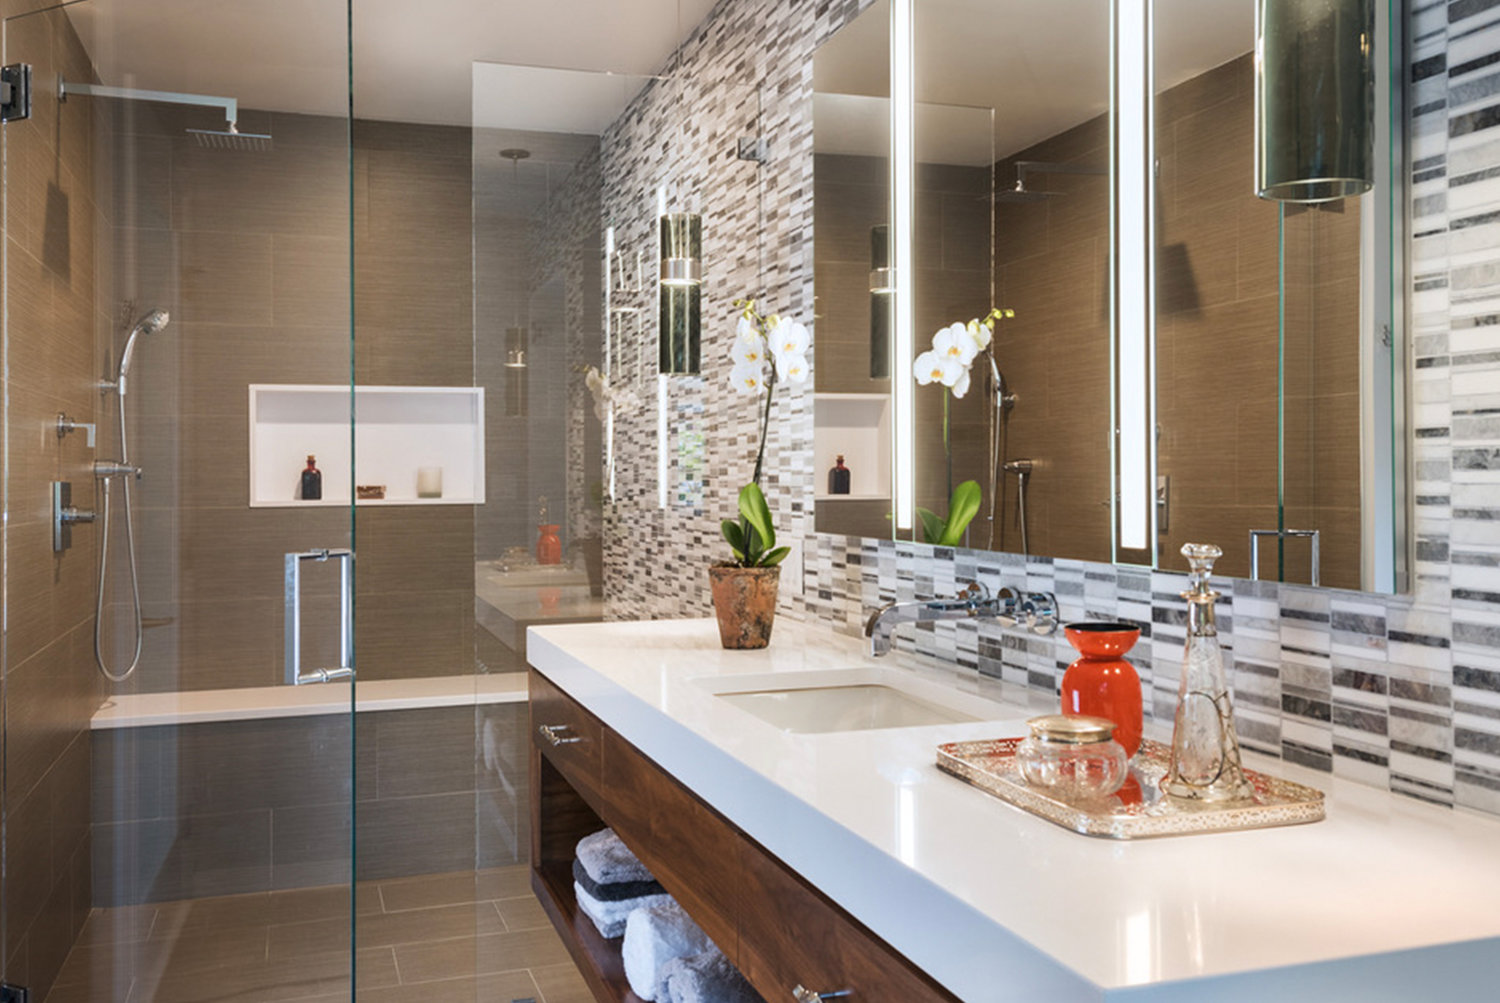 A calming palette of white counter tops, gray and white mosaic stone and glass, and mocha porcelain floors, keeps the single-windowed bathroom light and bright.